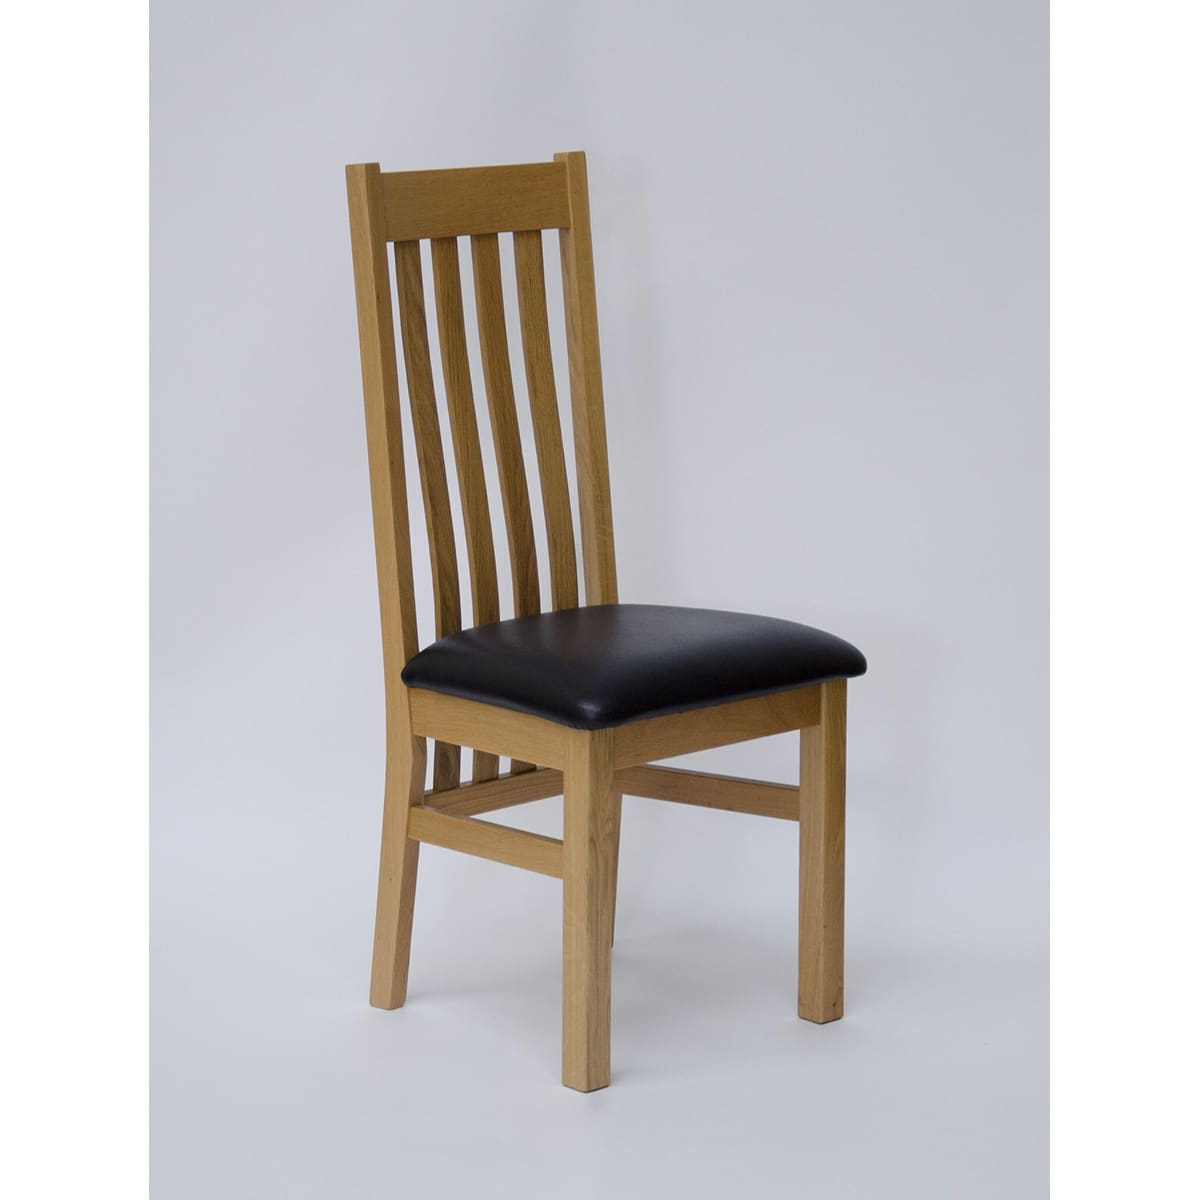 Pergoda oak dining chair